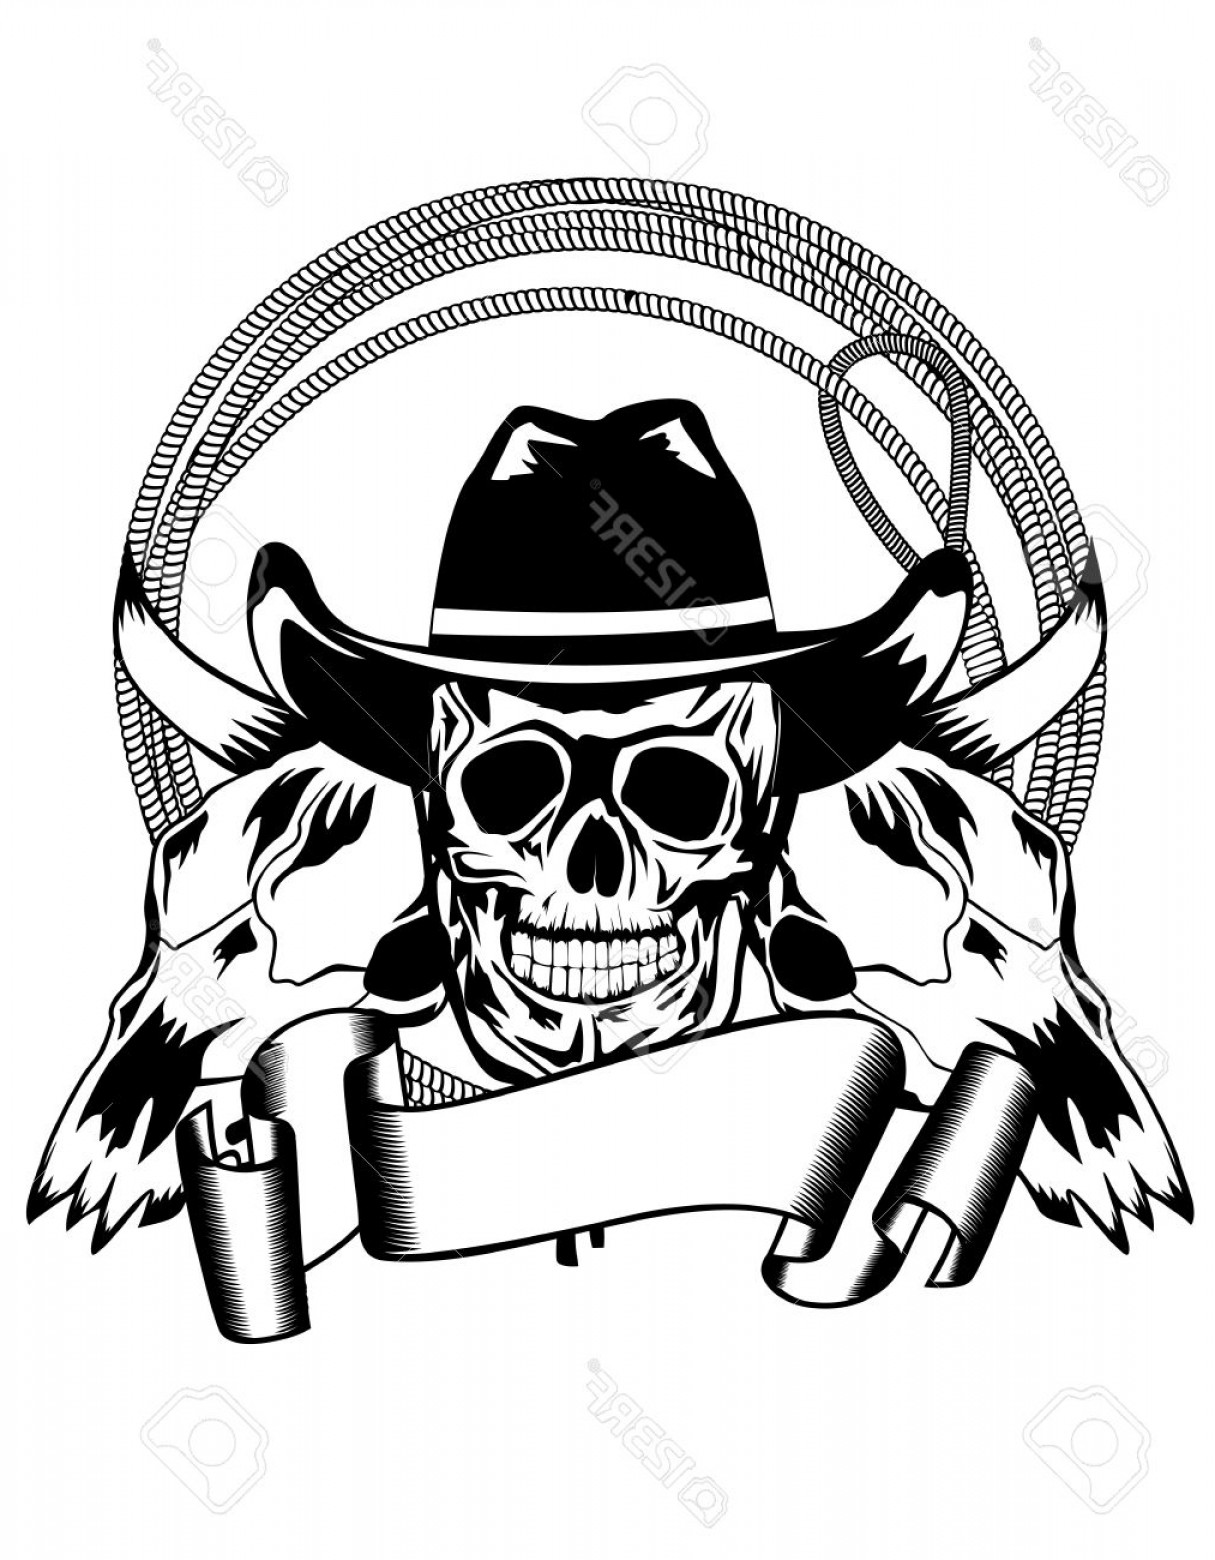 Cowboys Line Drawings Vector: Photovector Illustration Cowboy And Skull Bull